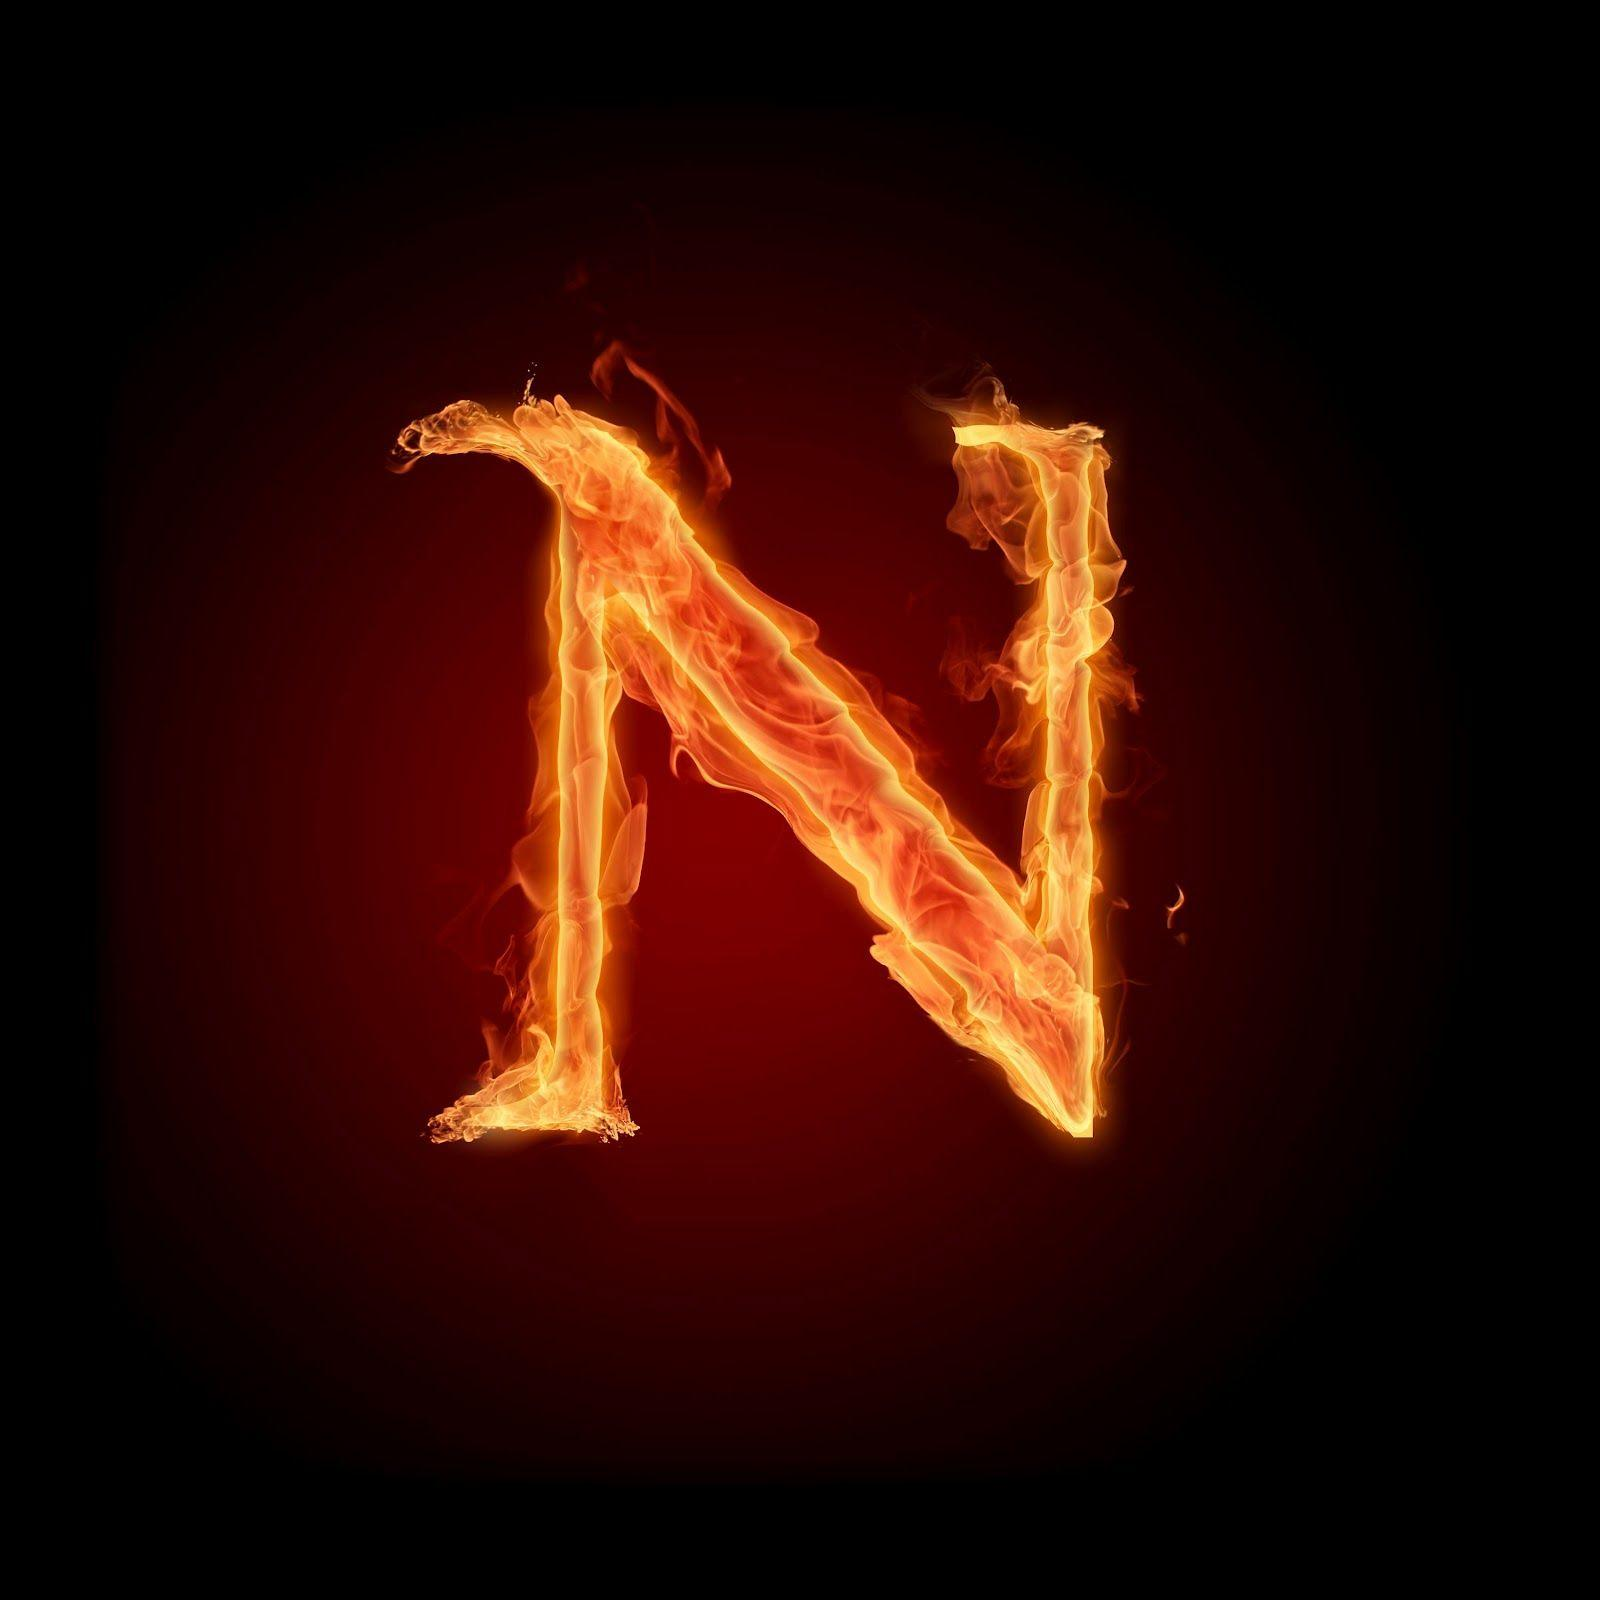 N Name Wallpapers Wallpaper Cave